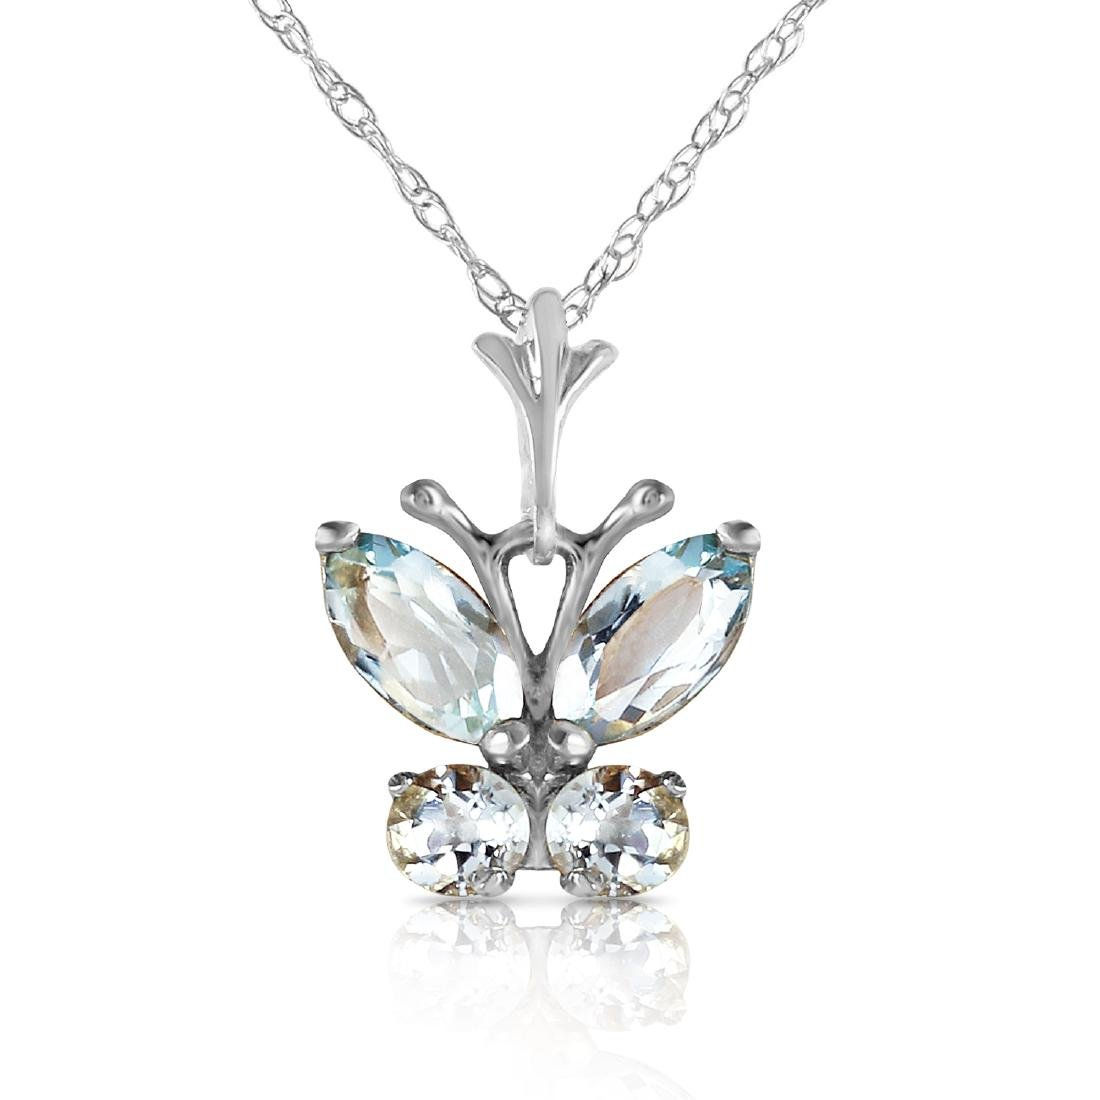 Genuine 0.60 ctw Aquamarine Necklace Jewelry 14KT White